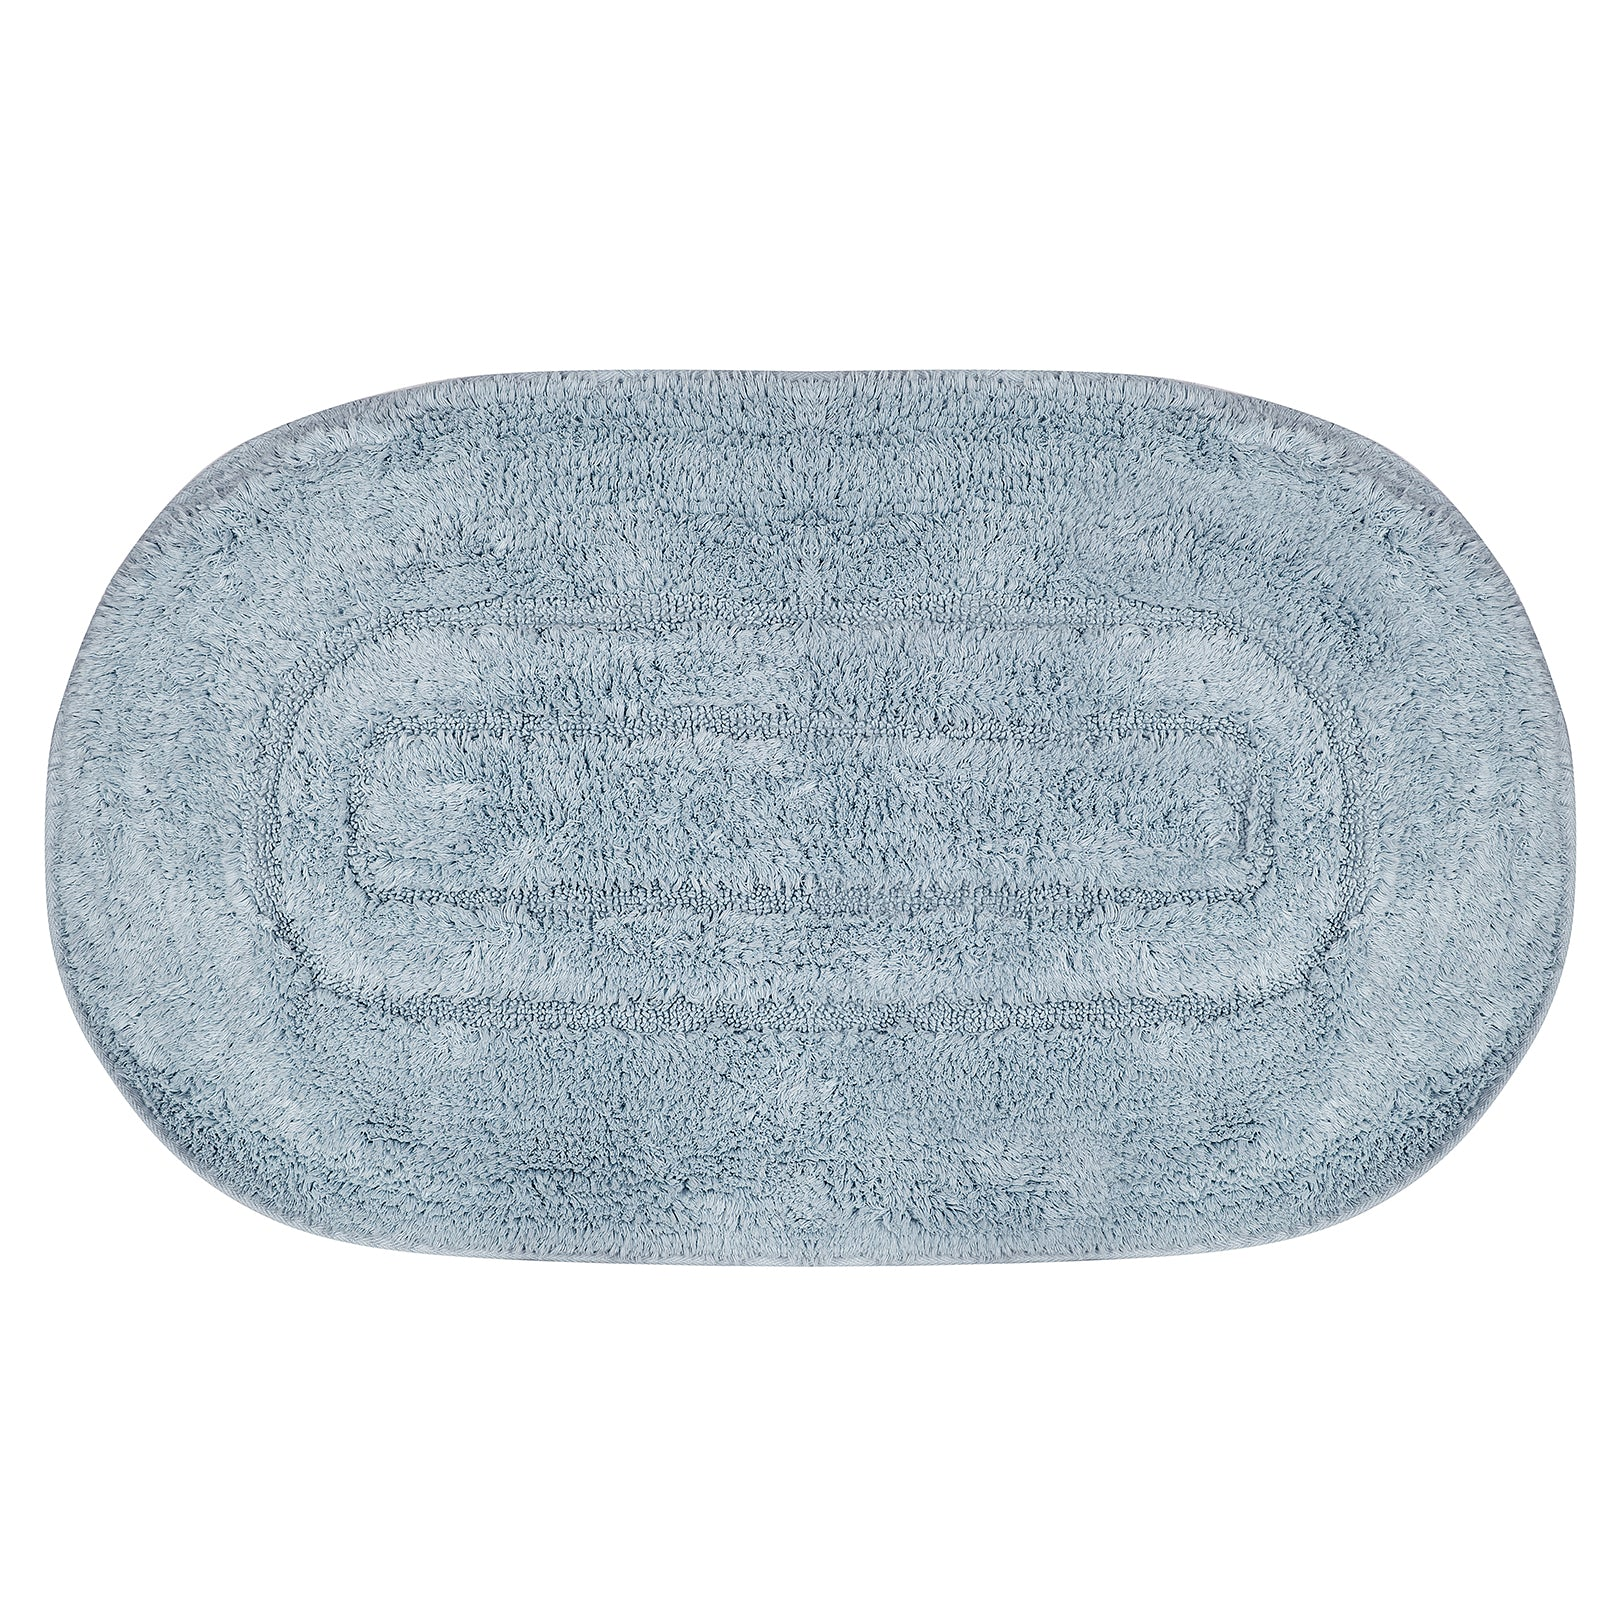 Milena Blue 2 Piece Bath Mat 200.15.01.0073 -  سجادة حمام ميلينا قطعتين - Shop Online Furniture and Home Decor Store in Dubai, UAE at ebarza